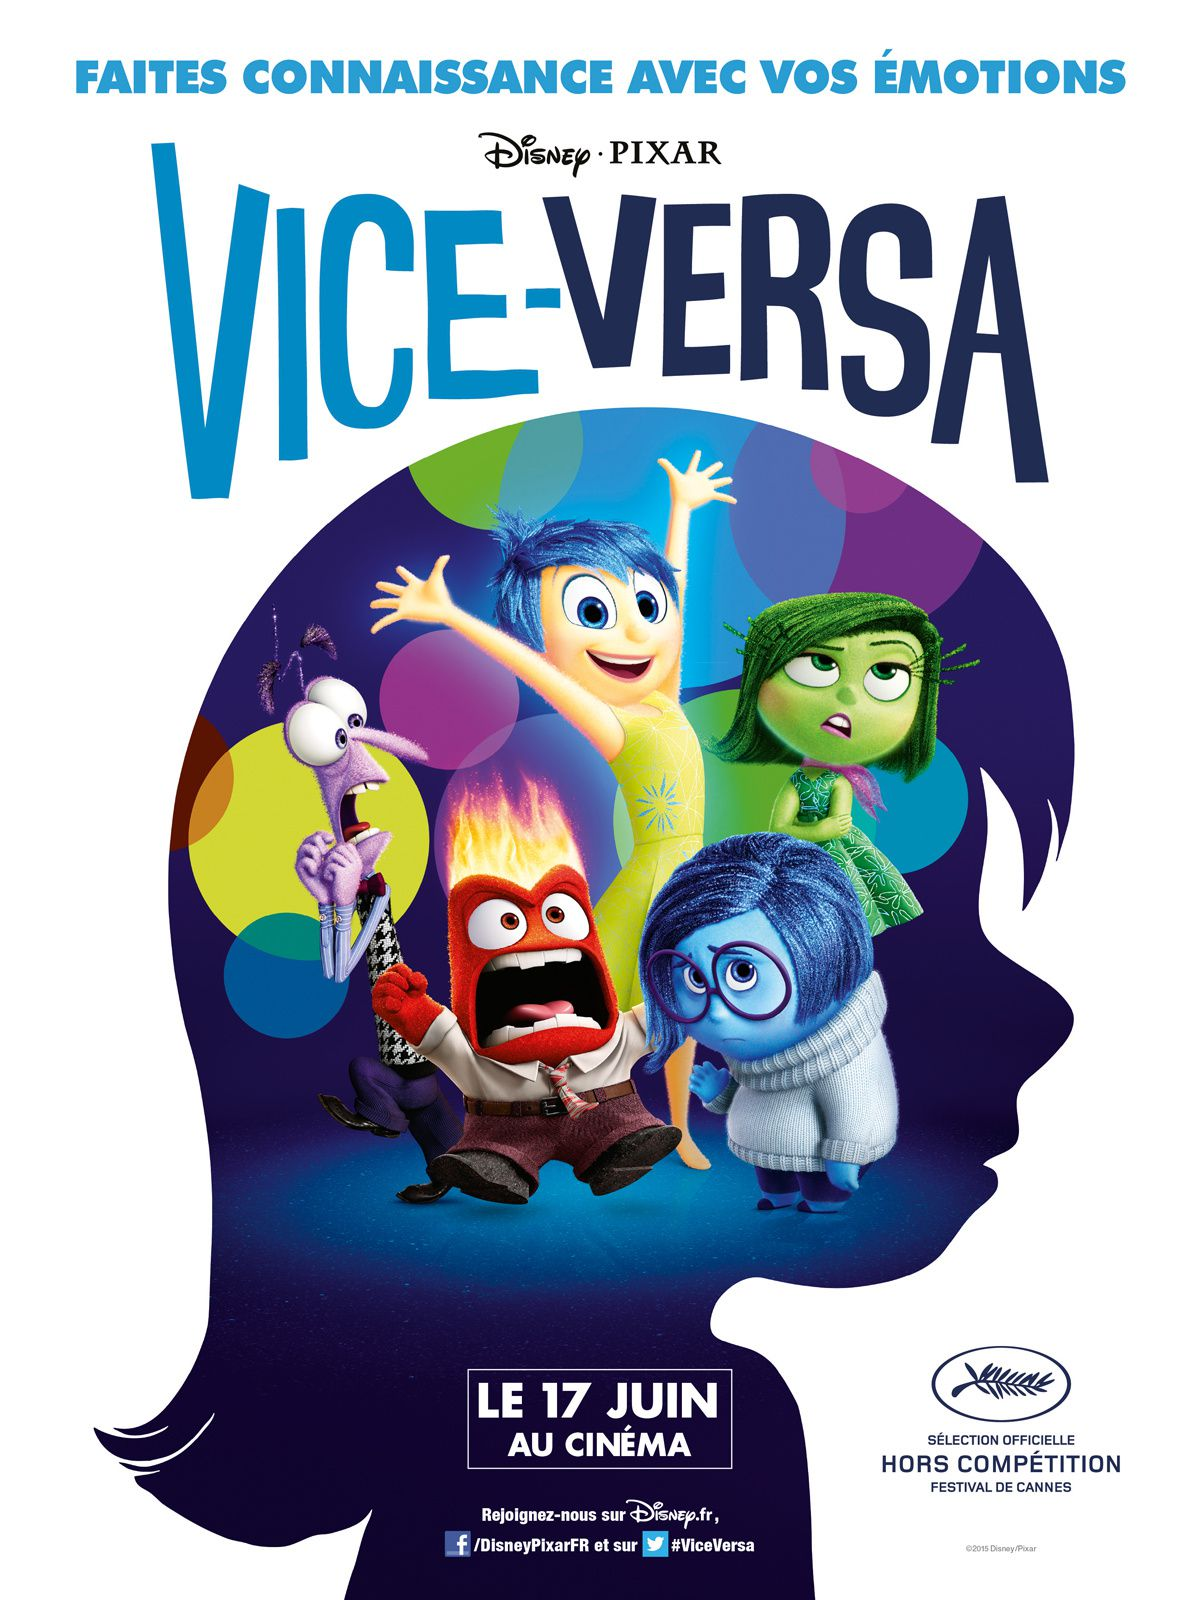 vice versa ☆ Disney Films ☆ films d'animation ☆ Films d'animation complet en Francais